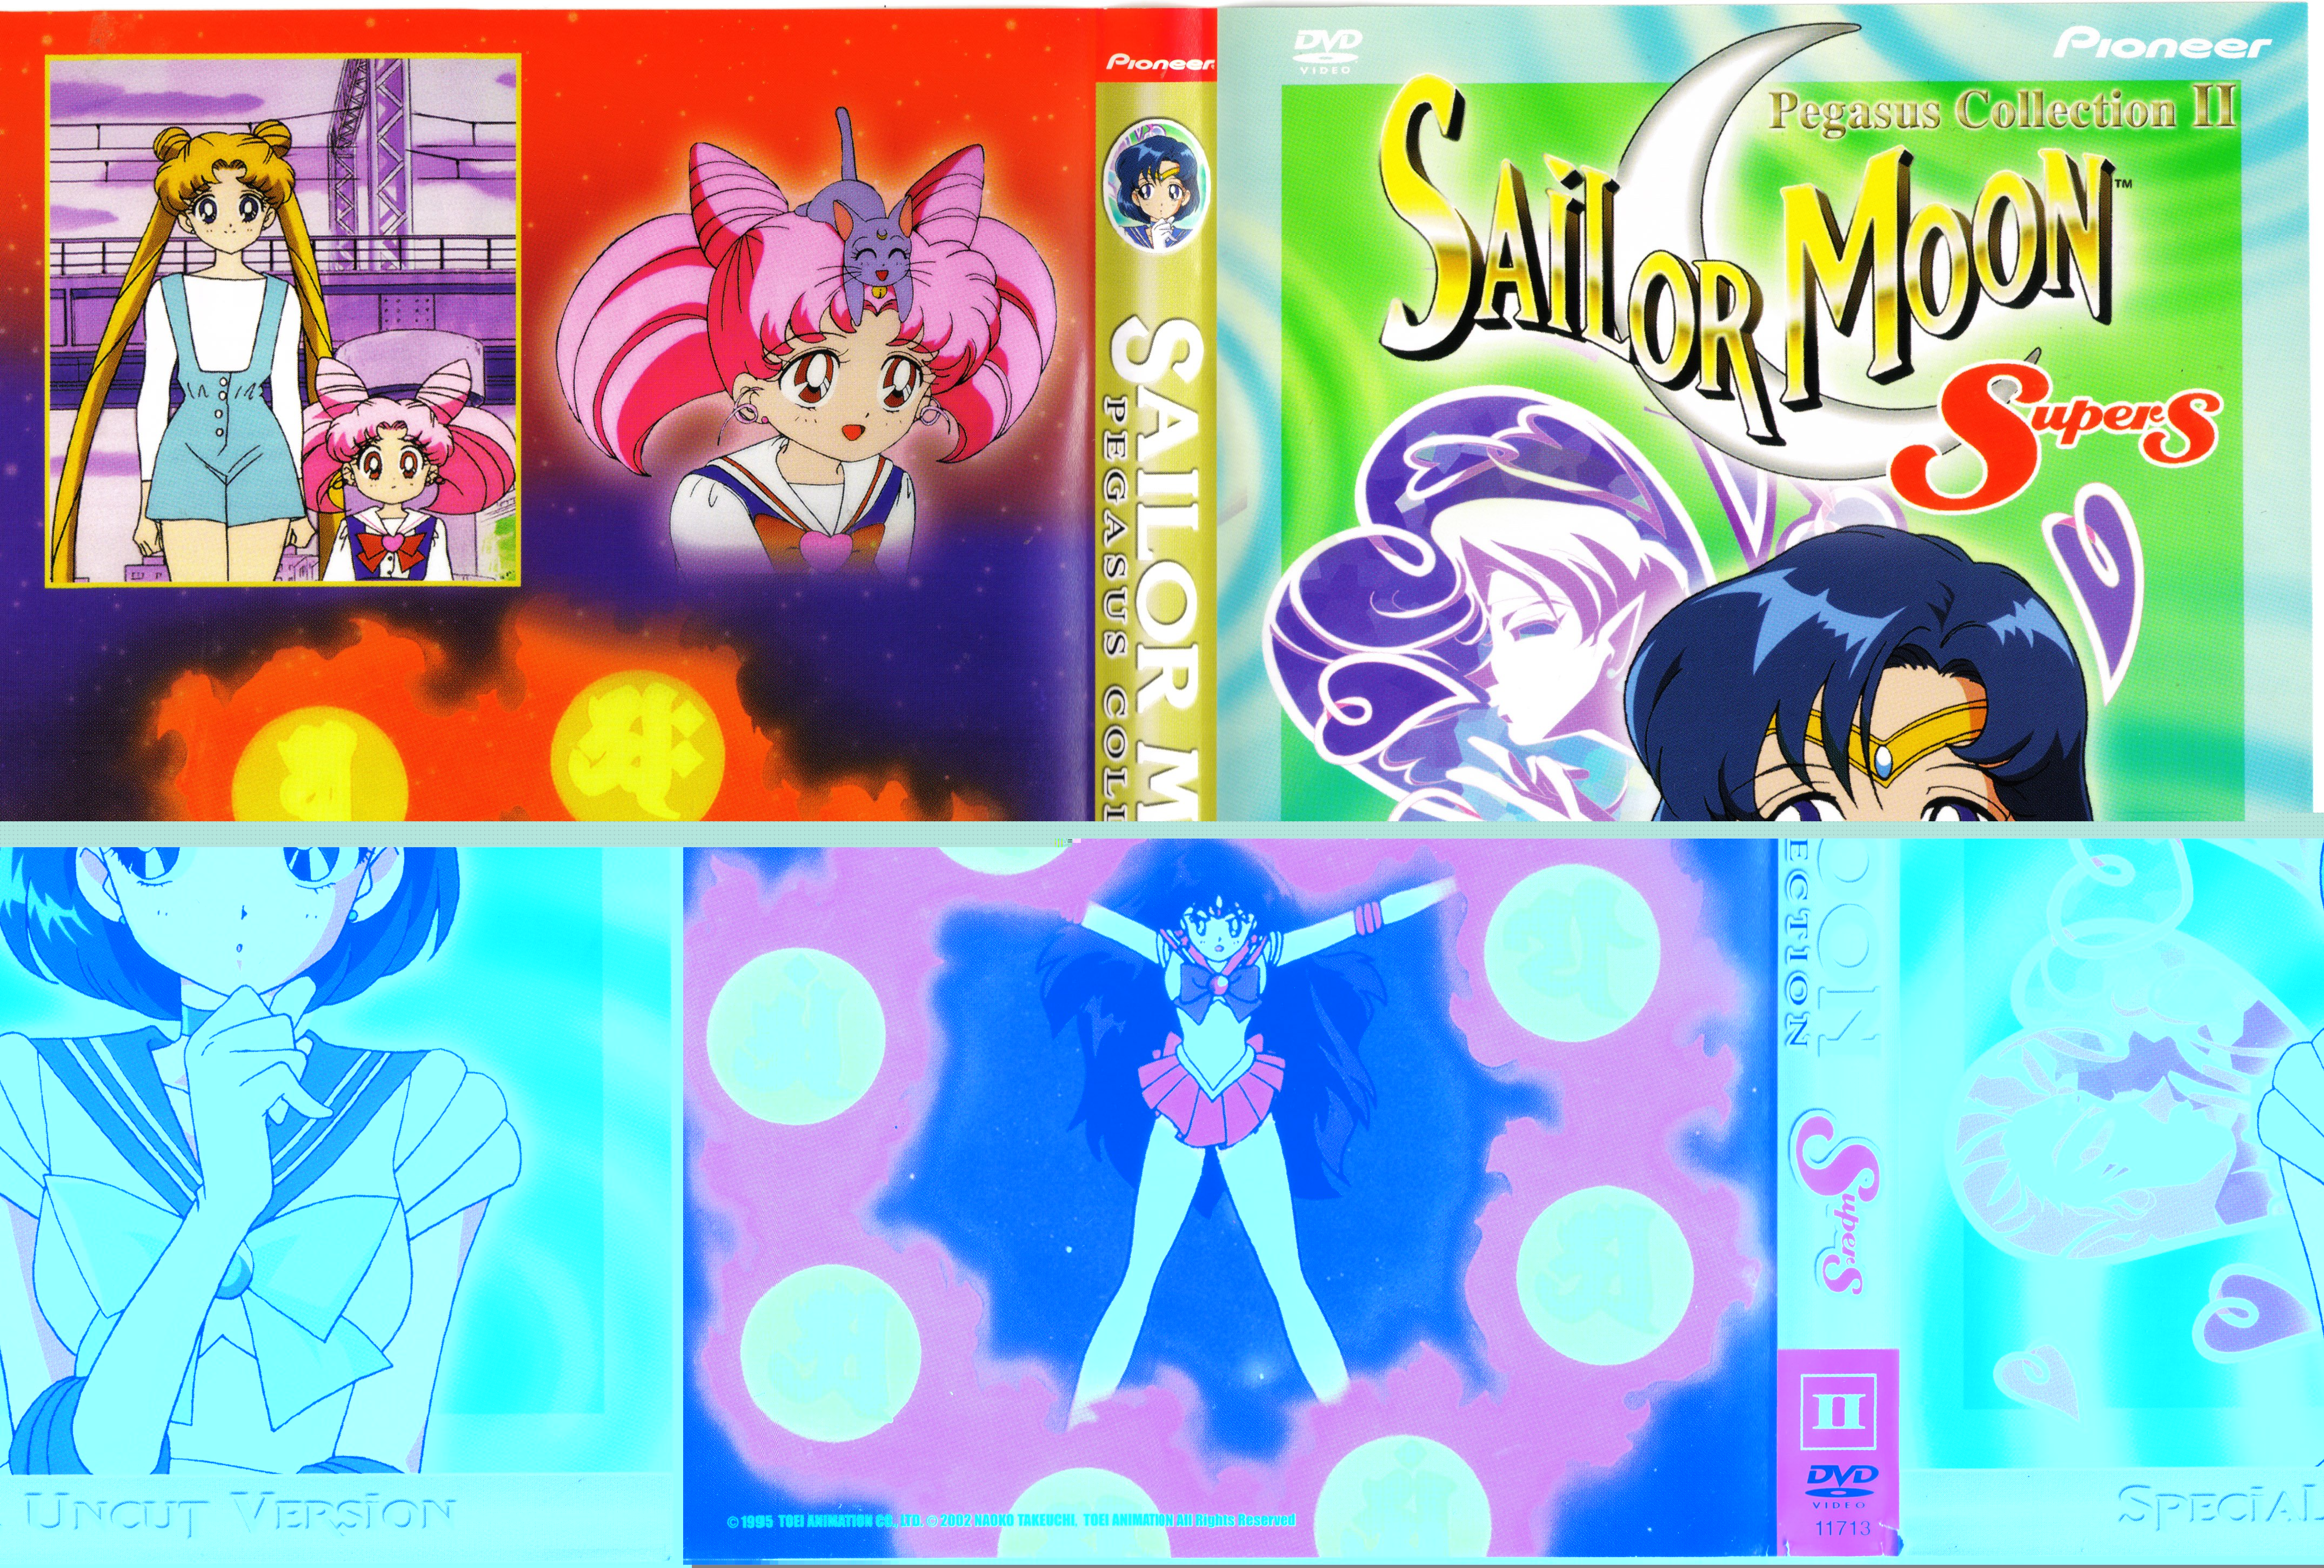 sailormoon528.jpg